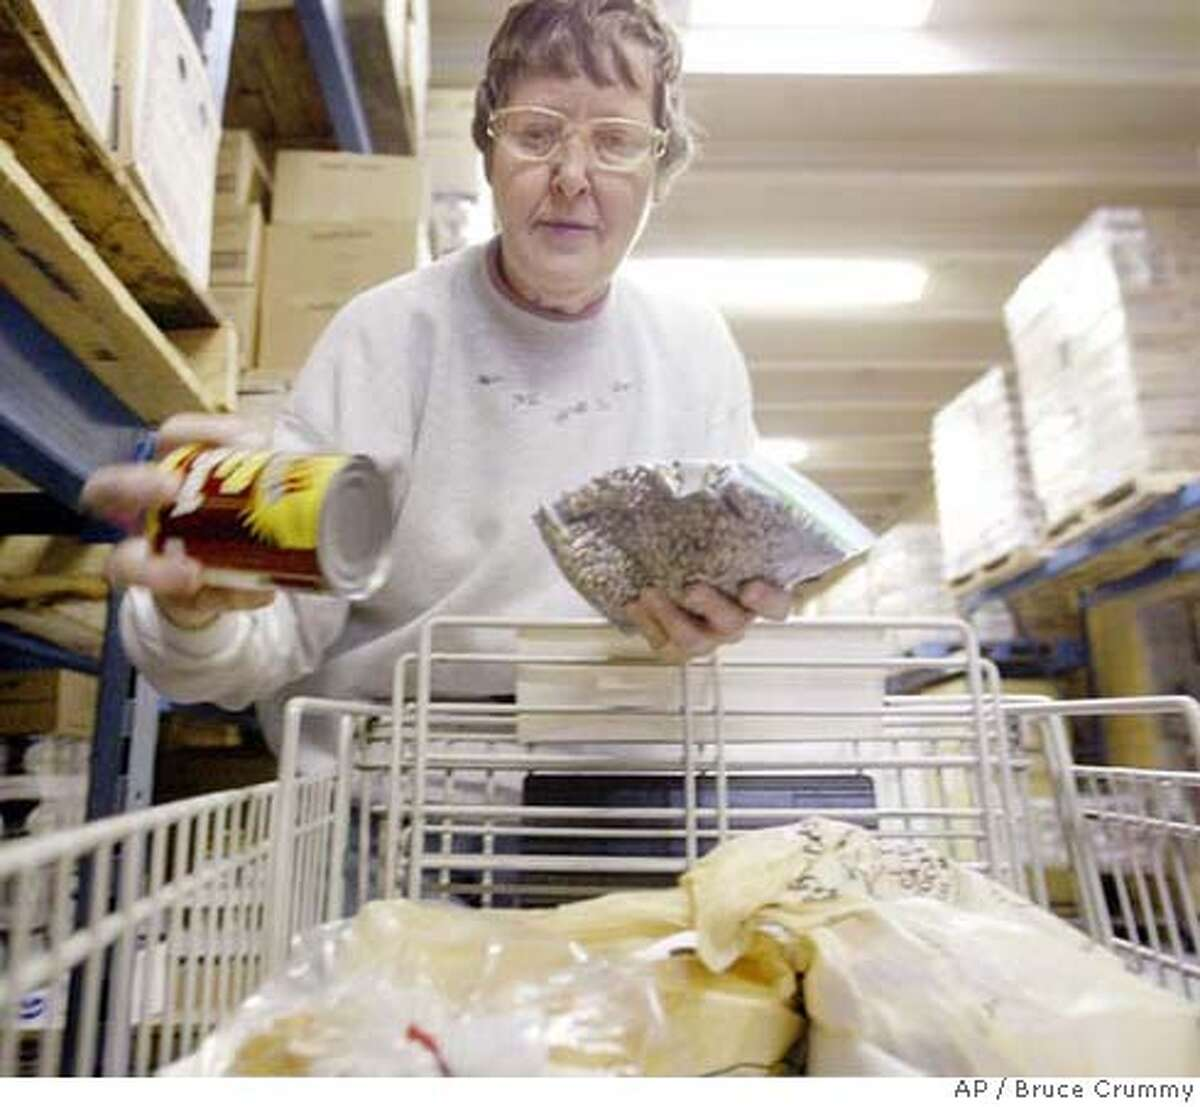 Janice Alm of Moorhead, Minn., an Emergency Food Pantry volunteer for ten years, stocks a cart with an order at the pantry's warehouse Oct. 20, 2006, in north Fargo, N.D. Volunteers at the pantry have found their supplies dwindling as the demand increases. This time of year, the shelves are mainly filled with leftover commodities sent by the federal Agriculture Department. (AP Photo/The Forum, Bruce Crummy) AN OCT. 10, 2006, PHOTO